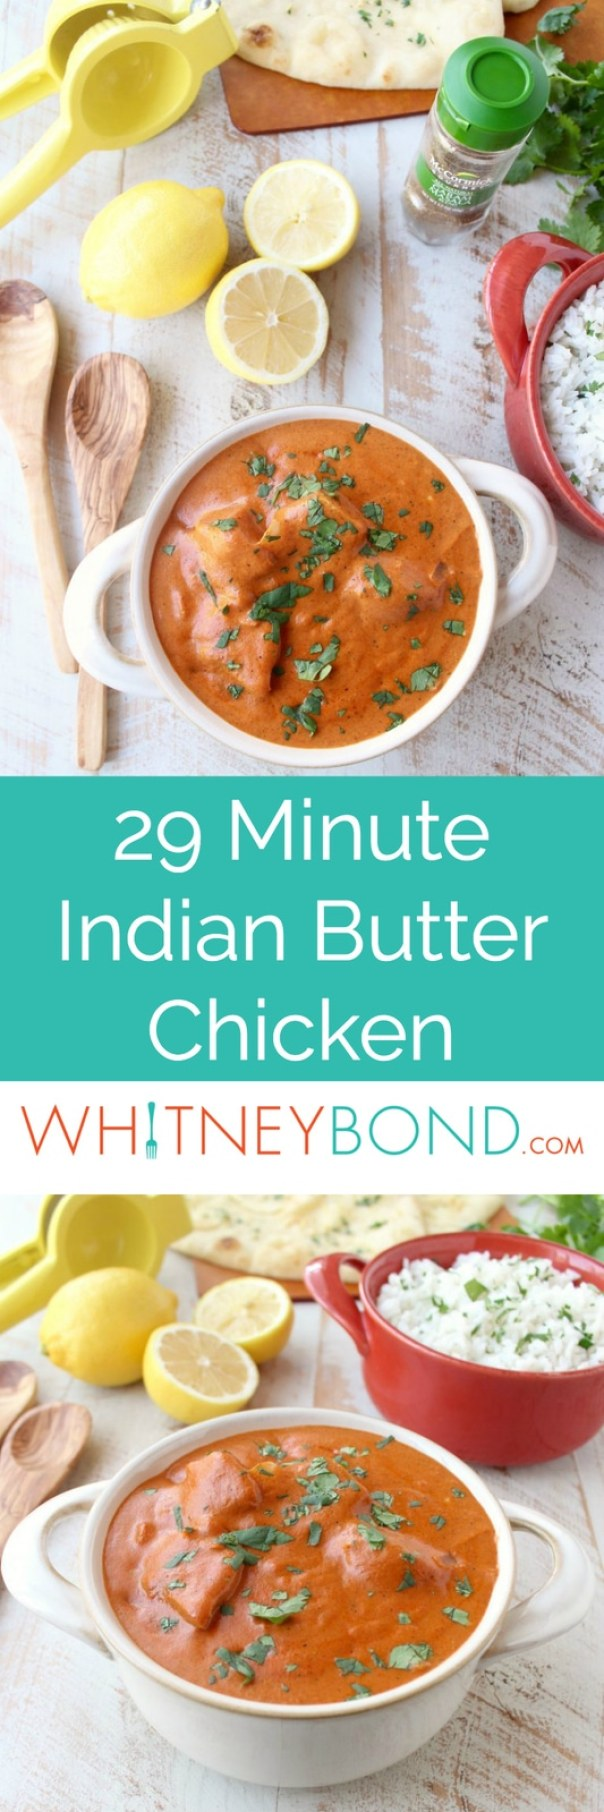 Indian butter chicken recipe 29 minute meal whitneybond this 29 minute indian butter chicken recipe is a quick easy twist on a classic forumfinder Image collections